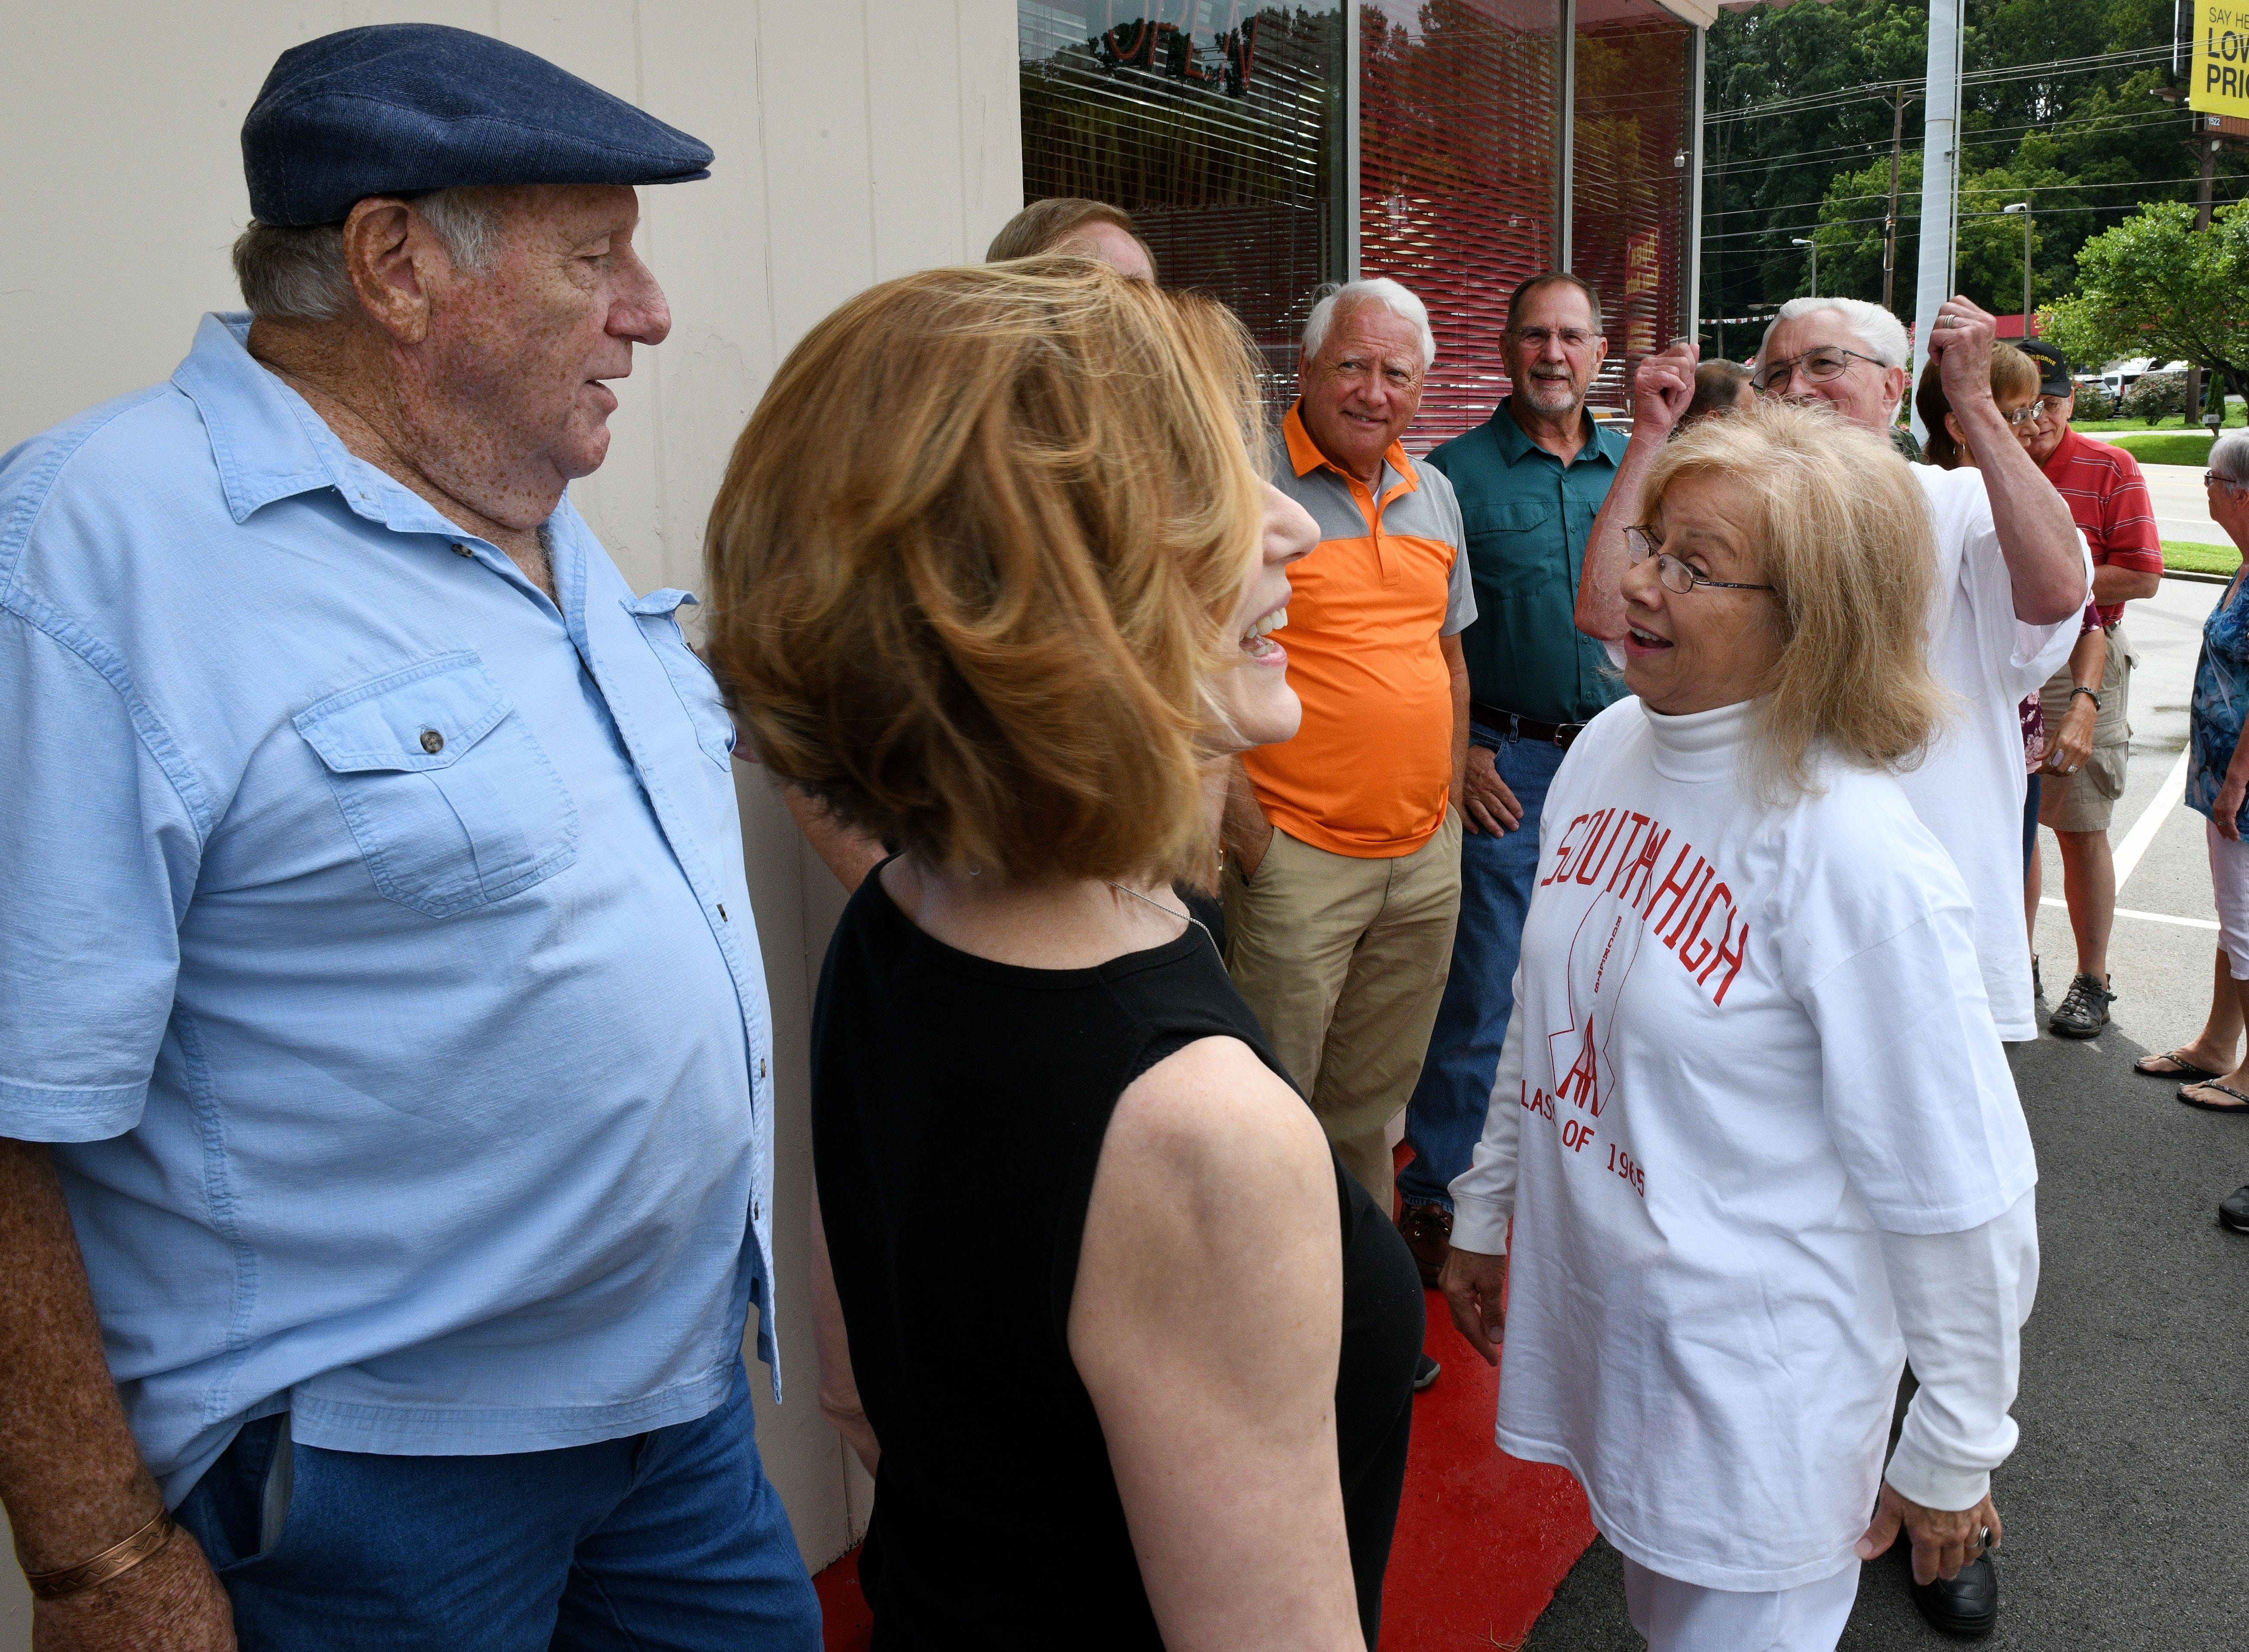 Members of the South High School Class of 1965 gathered outside the newly opened Scotts, in the old Kay's Ice Cream building, waiting for them to open Friday, August 10, 2018.